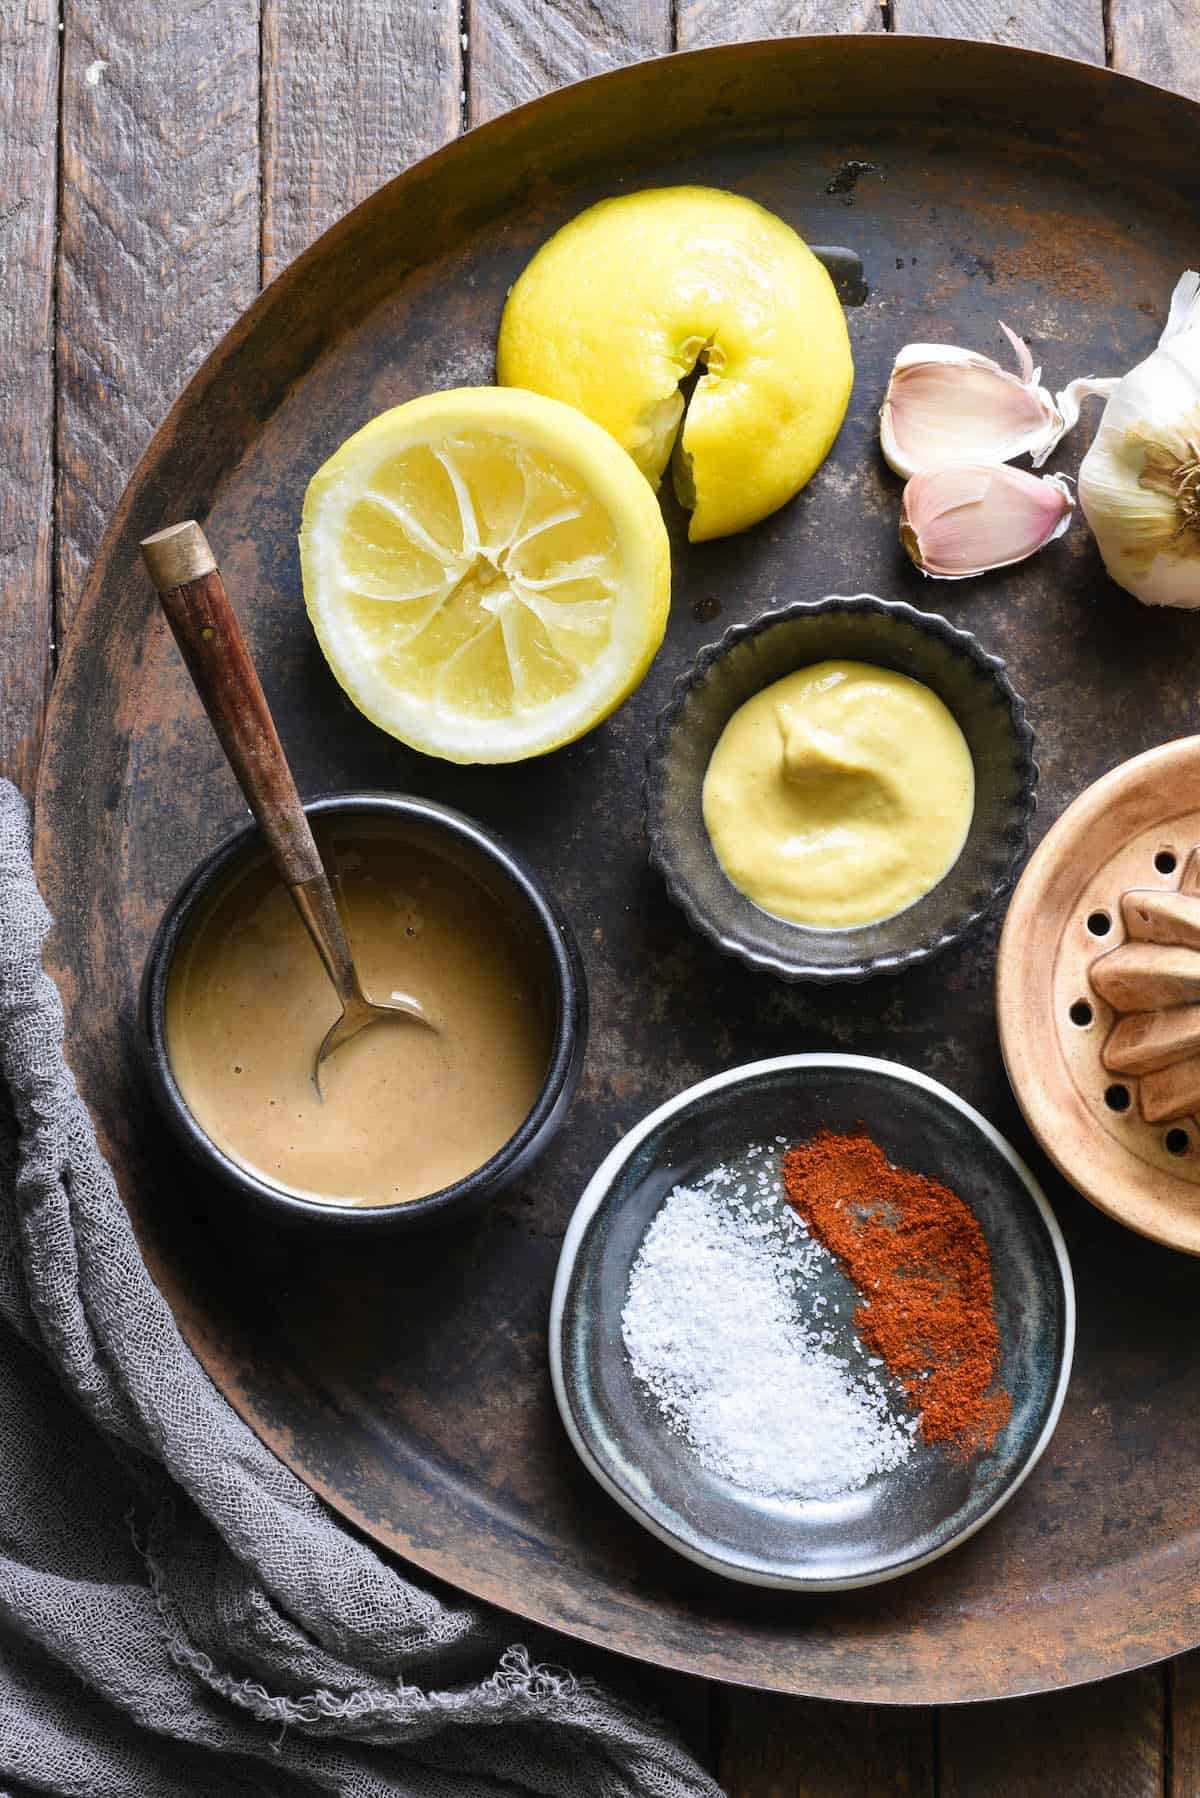 Overhead shot of ingredients for lemon tahini dressing. Tahini, salt and paprika, dijon mustard, lemon halves and garlic cloves.